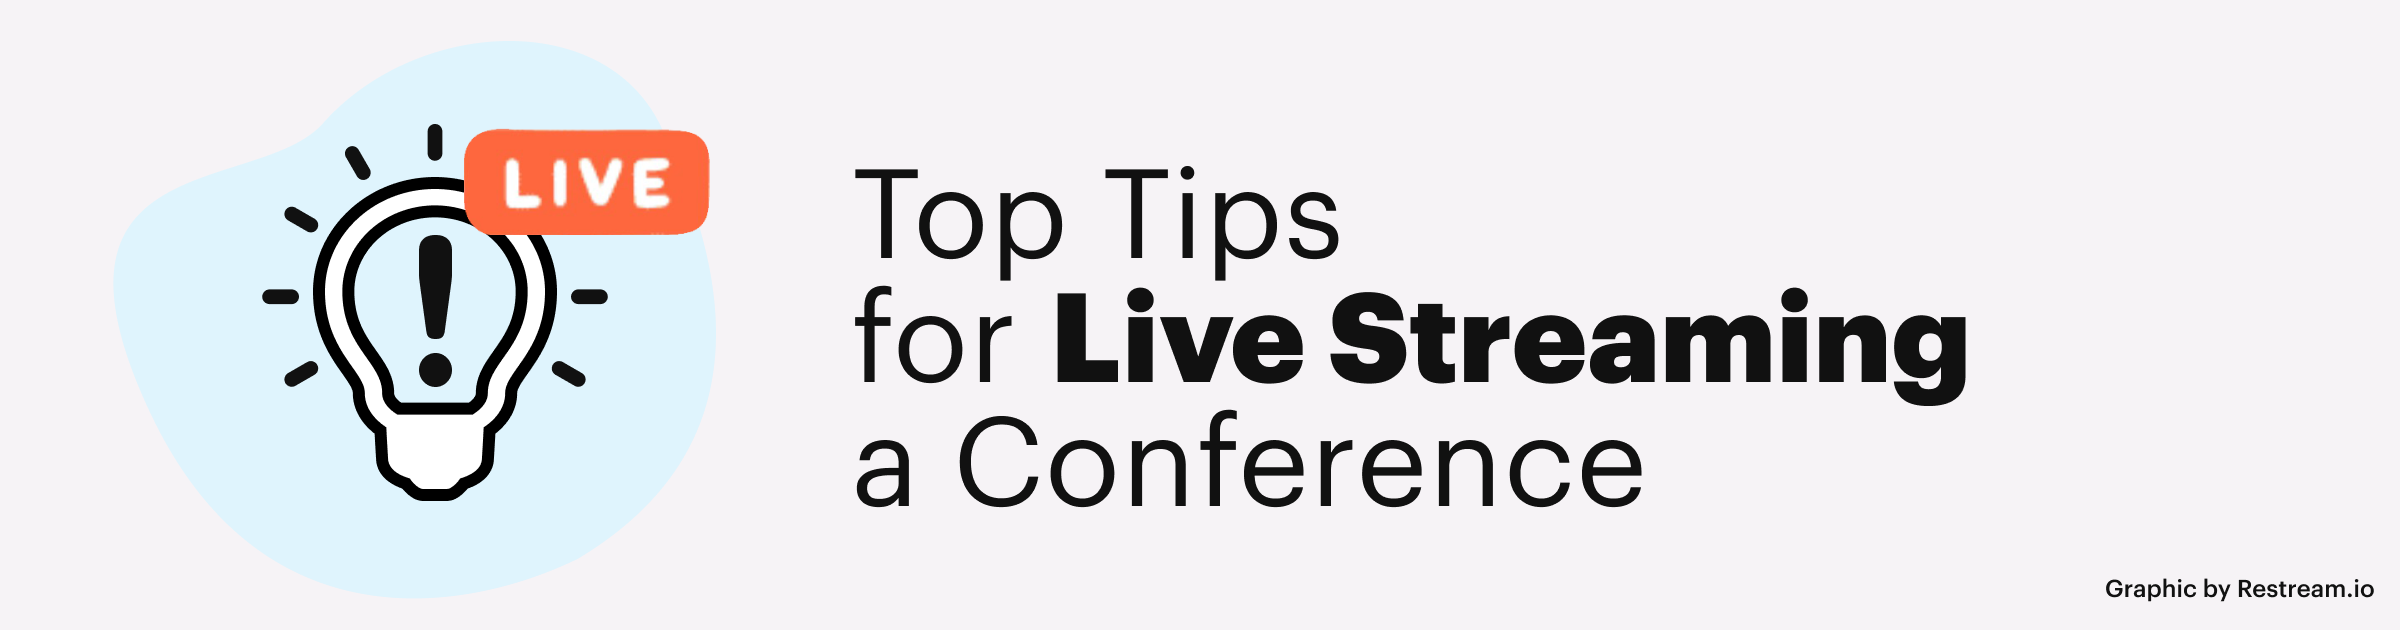 Top Tips for Live Streaming a Conference